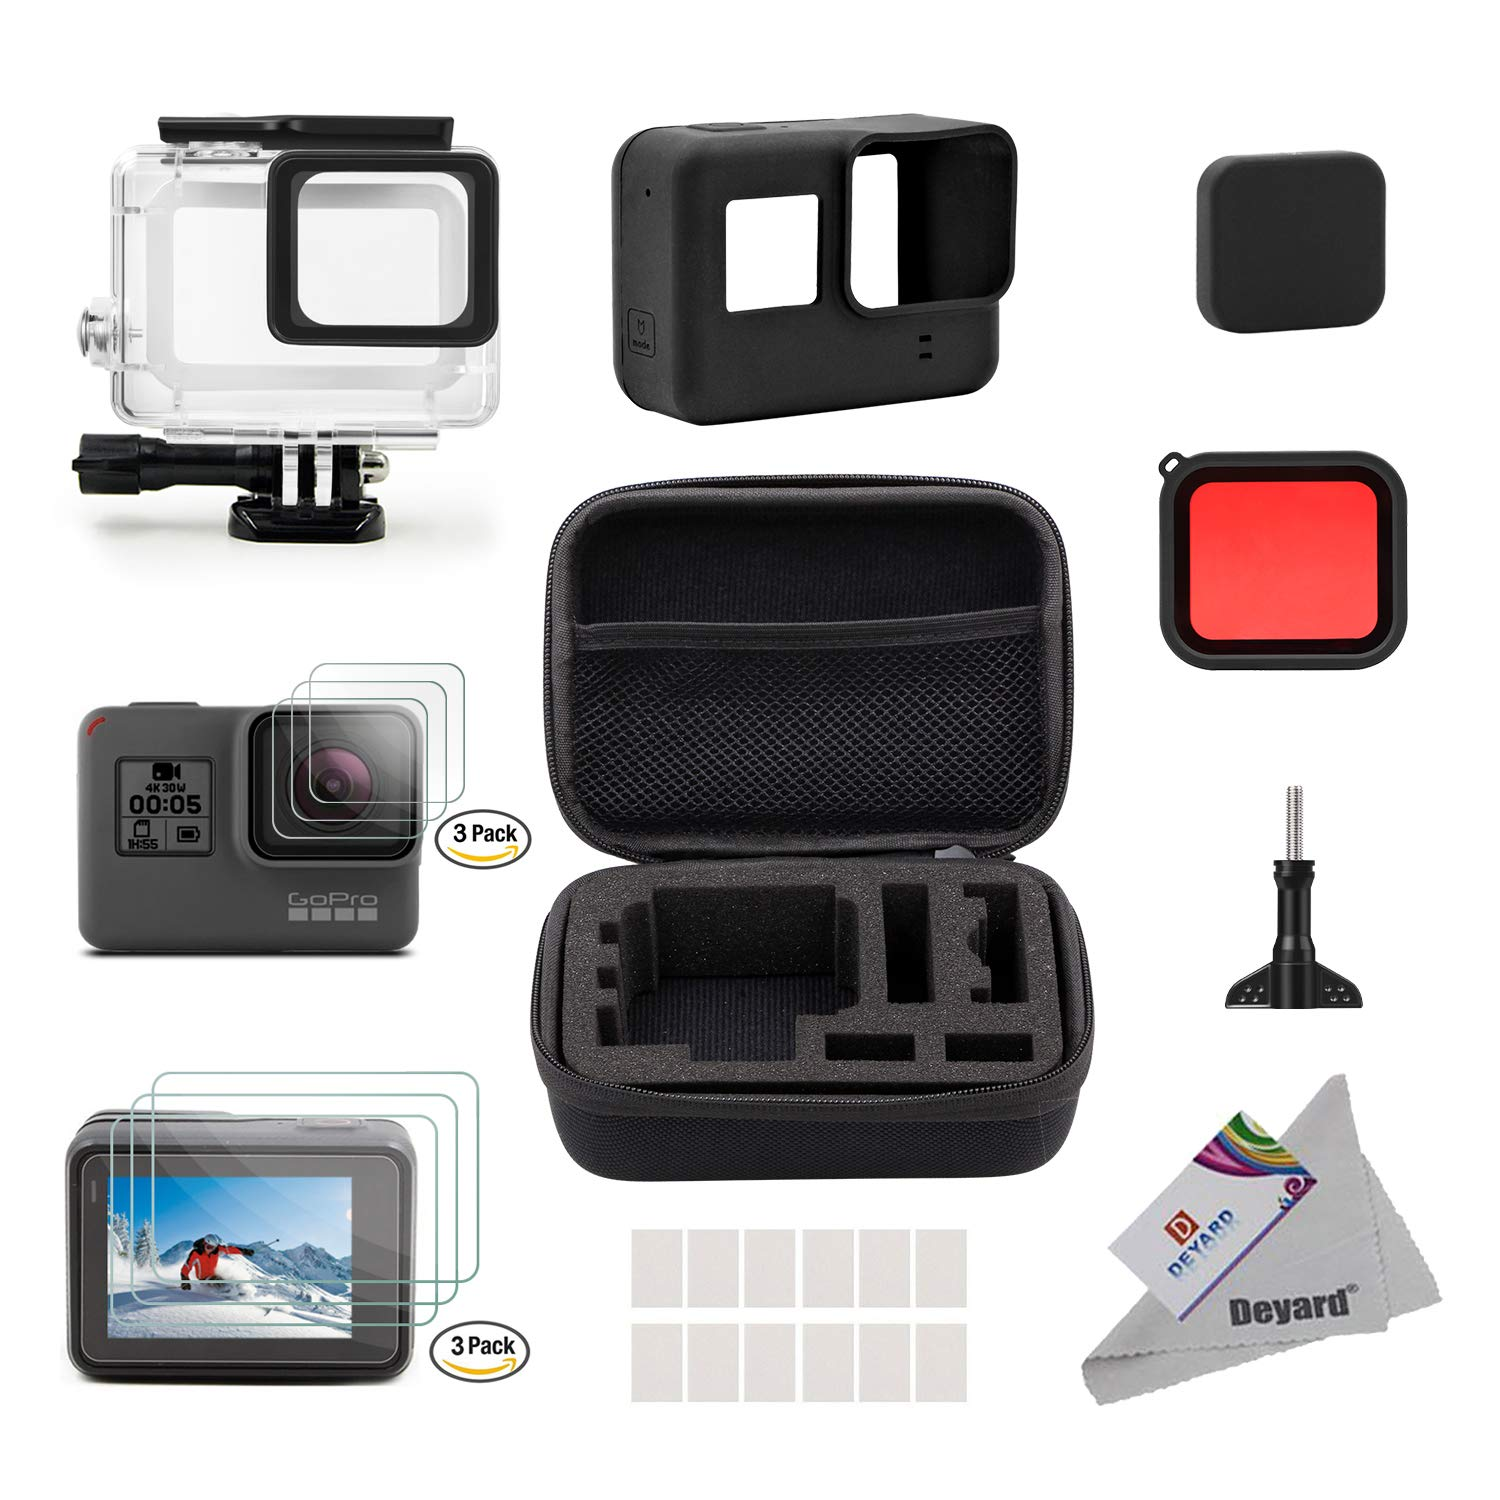 Amazon Com Deyard Accessory Kit For Gopro Hero 7 Only Black Hd 2018 6 5 With Shockproof Small Case Waterproof Case Bundle For Gopro Hero 7 Hero Hd 2018 Hero 6 Hero 5 Action Camera Camera Photo